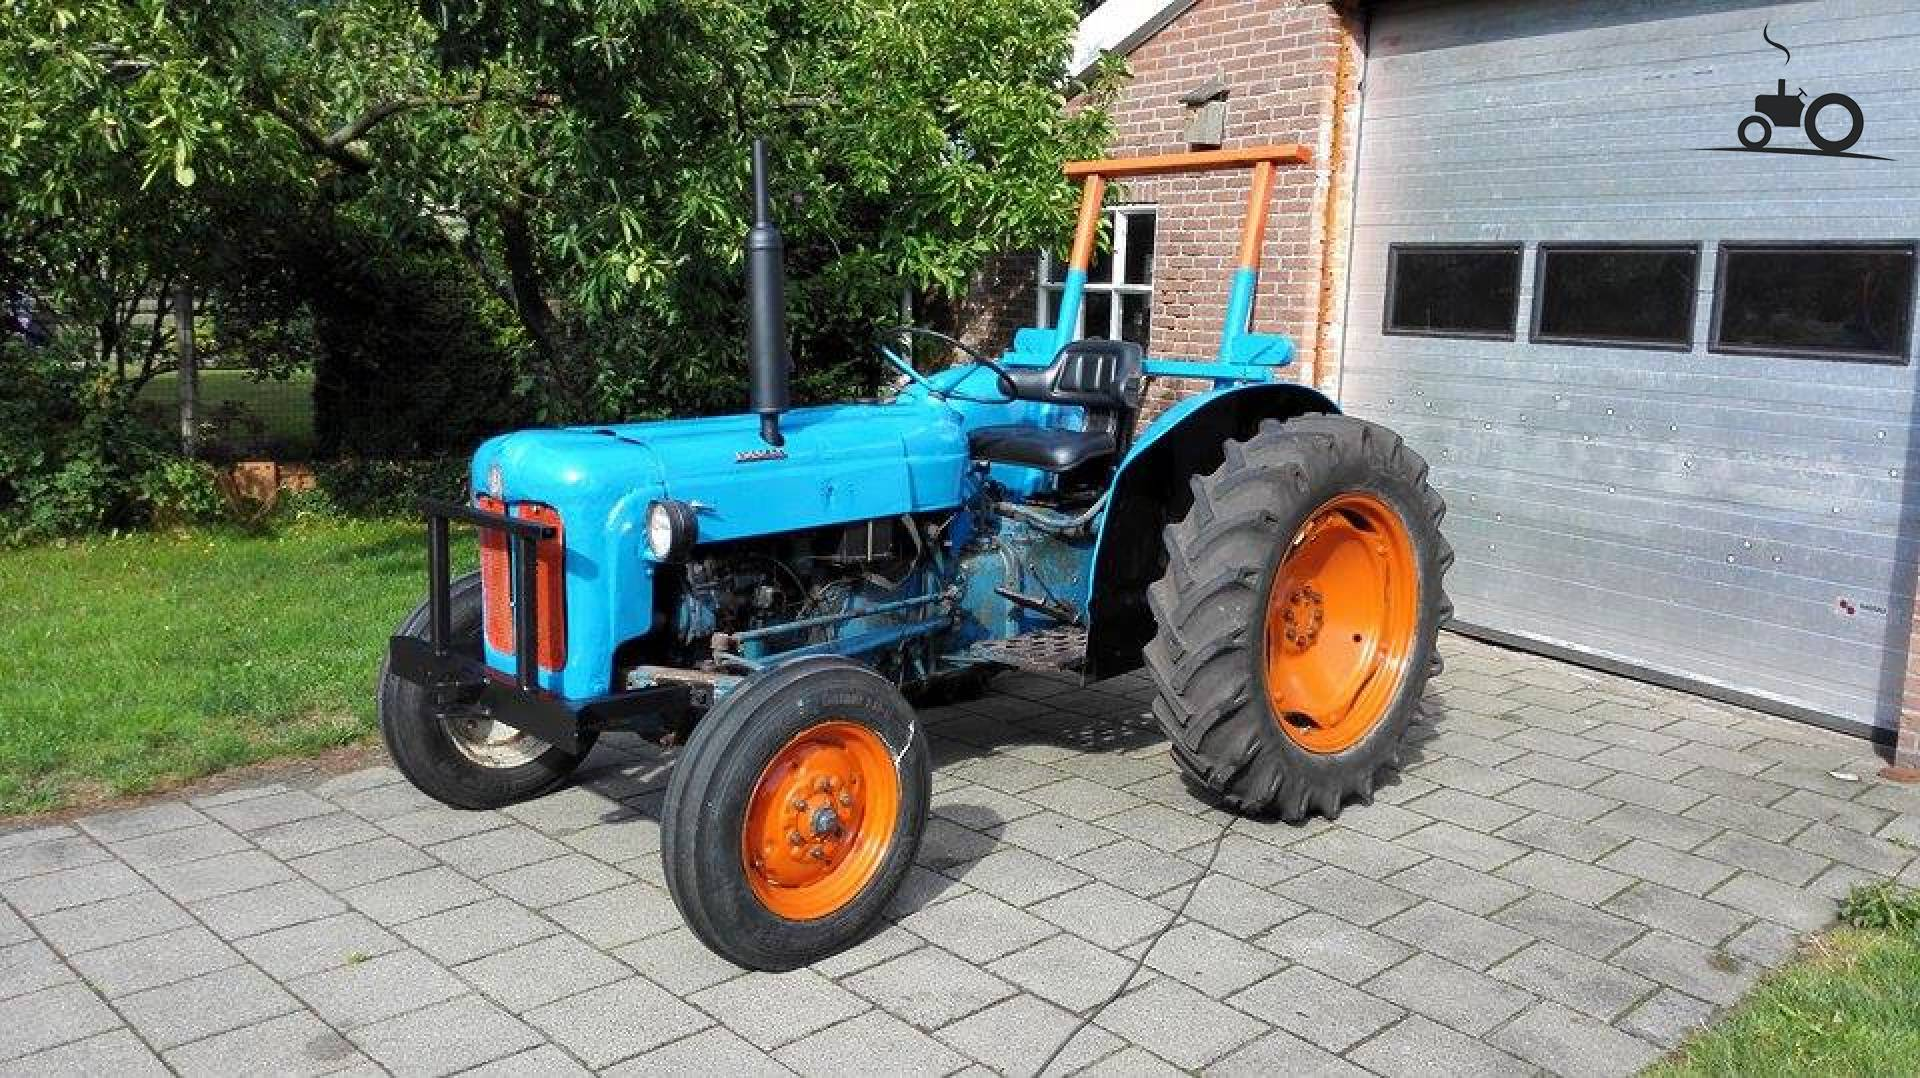 fordson dexta with 930670 on Farg 1l Fordson Gran additionally T1765 Diferencias Entre Ebro 160d Y 160e further File Fordson Dexta p2 besides 1962 1970 in addition 932838.